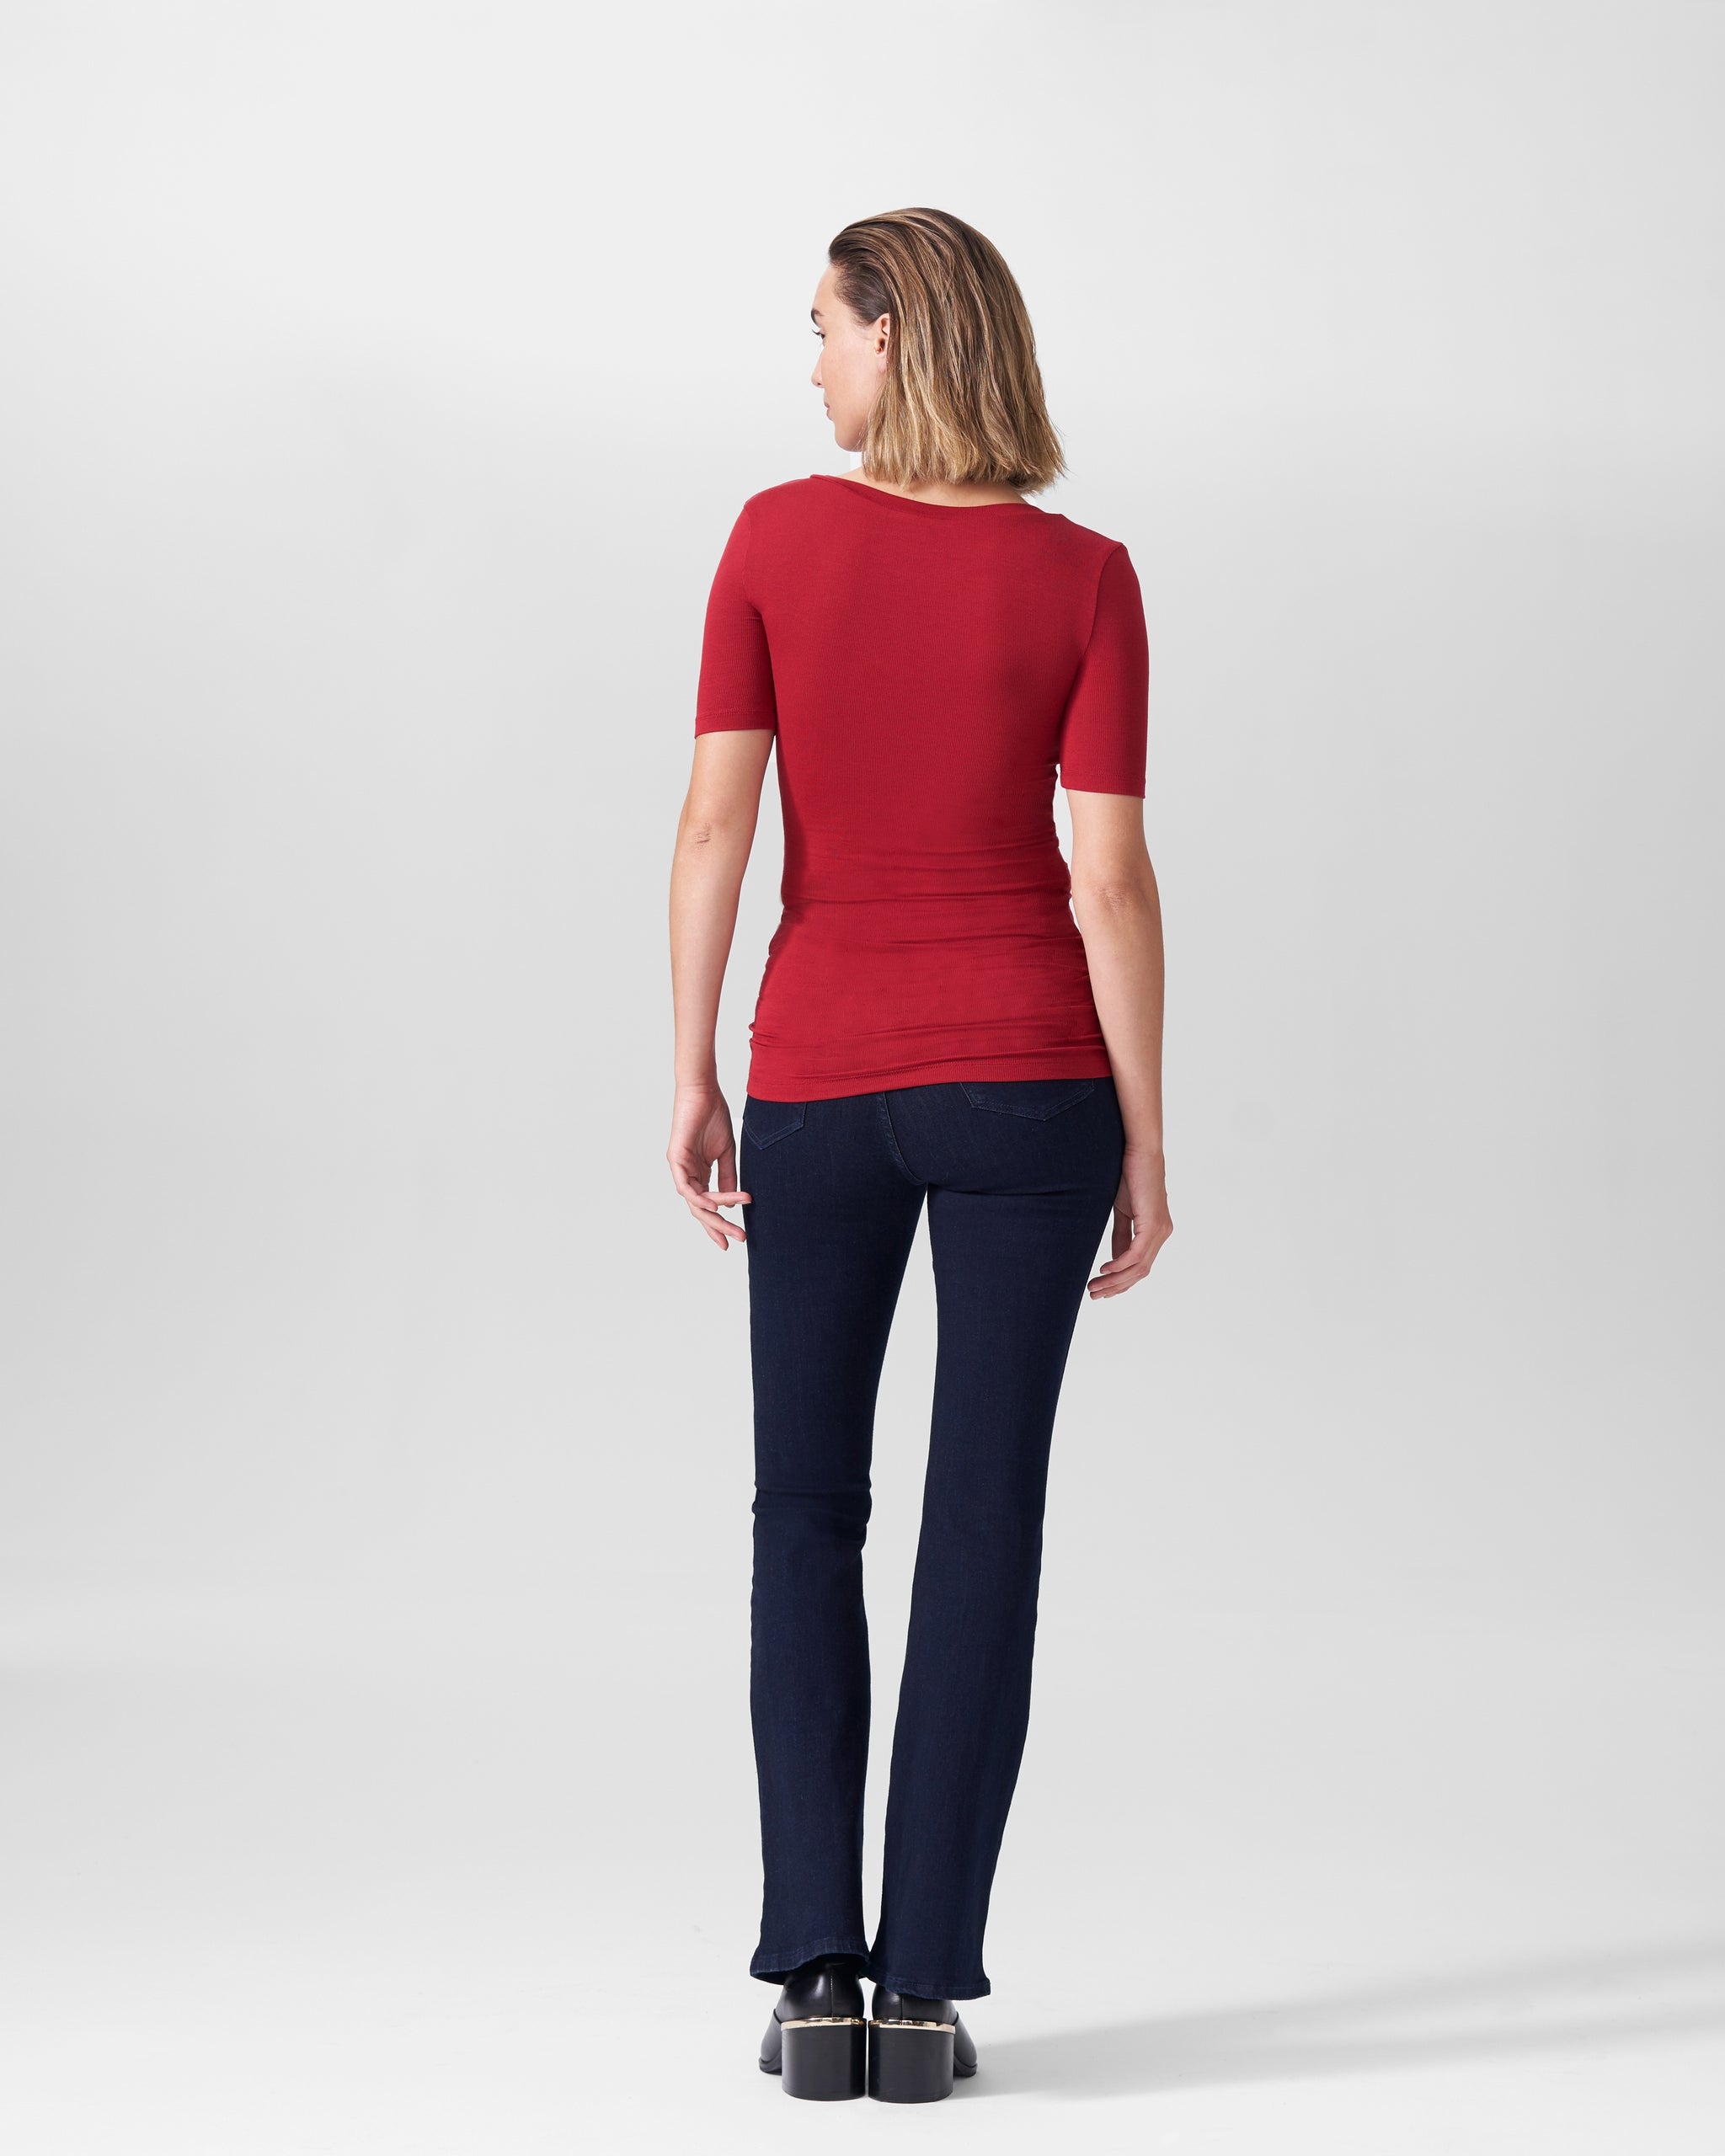 Foundation Short Sleeve V Neck Tee - Red Dahlia